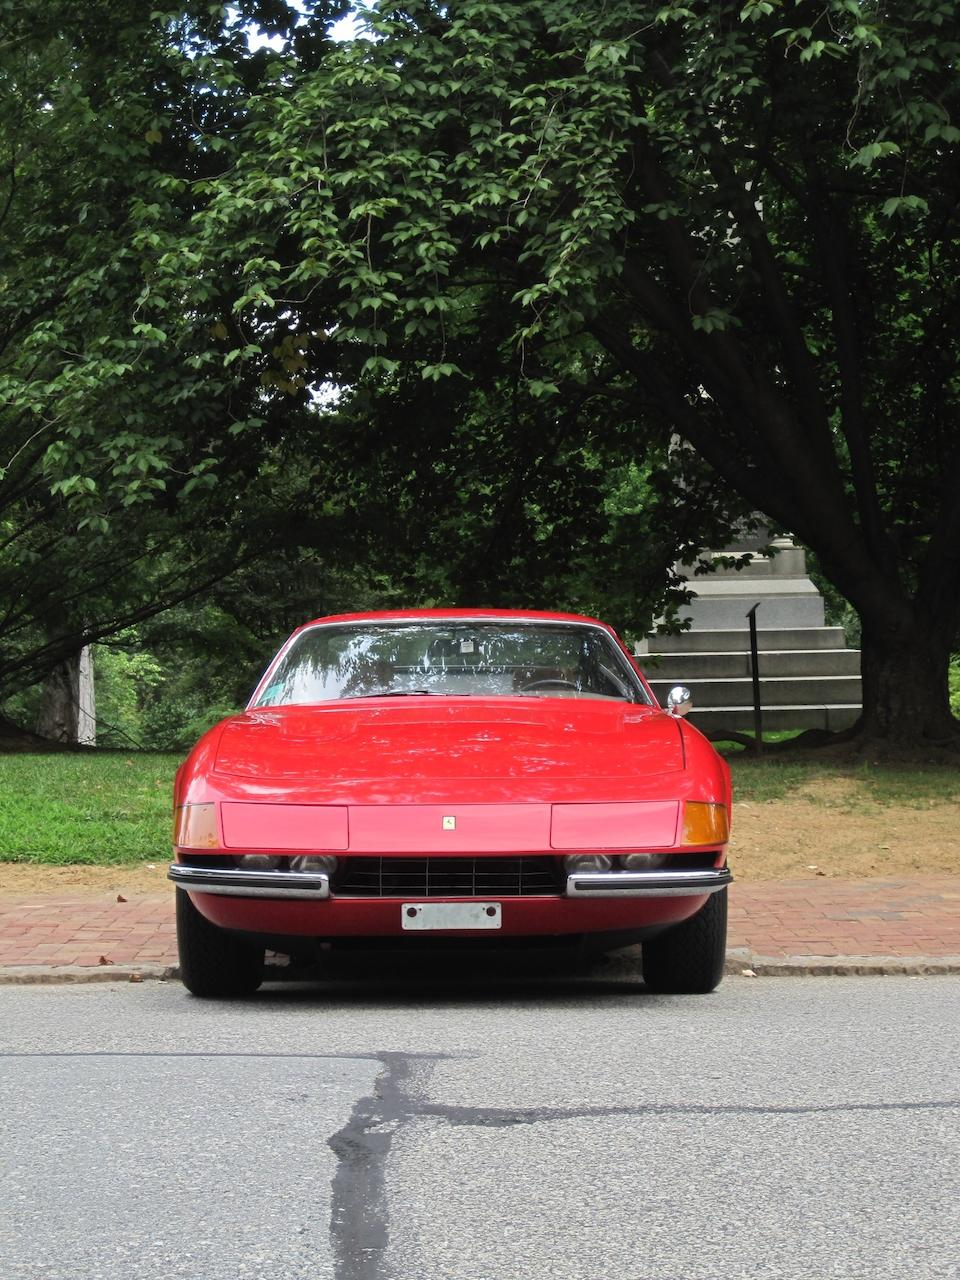 26,000 miles from new, US supplied, long term first ownership,1973 Ferrari 365 GTB/4 Daytona Coupe   Chassis no. 16221